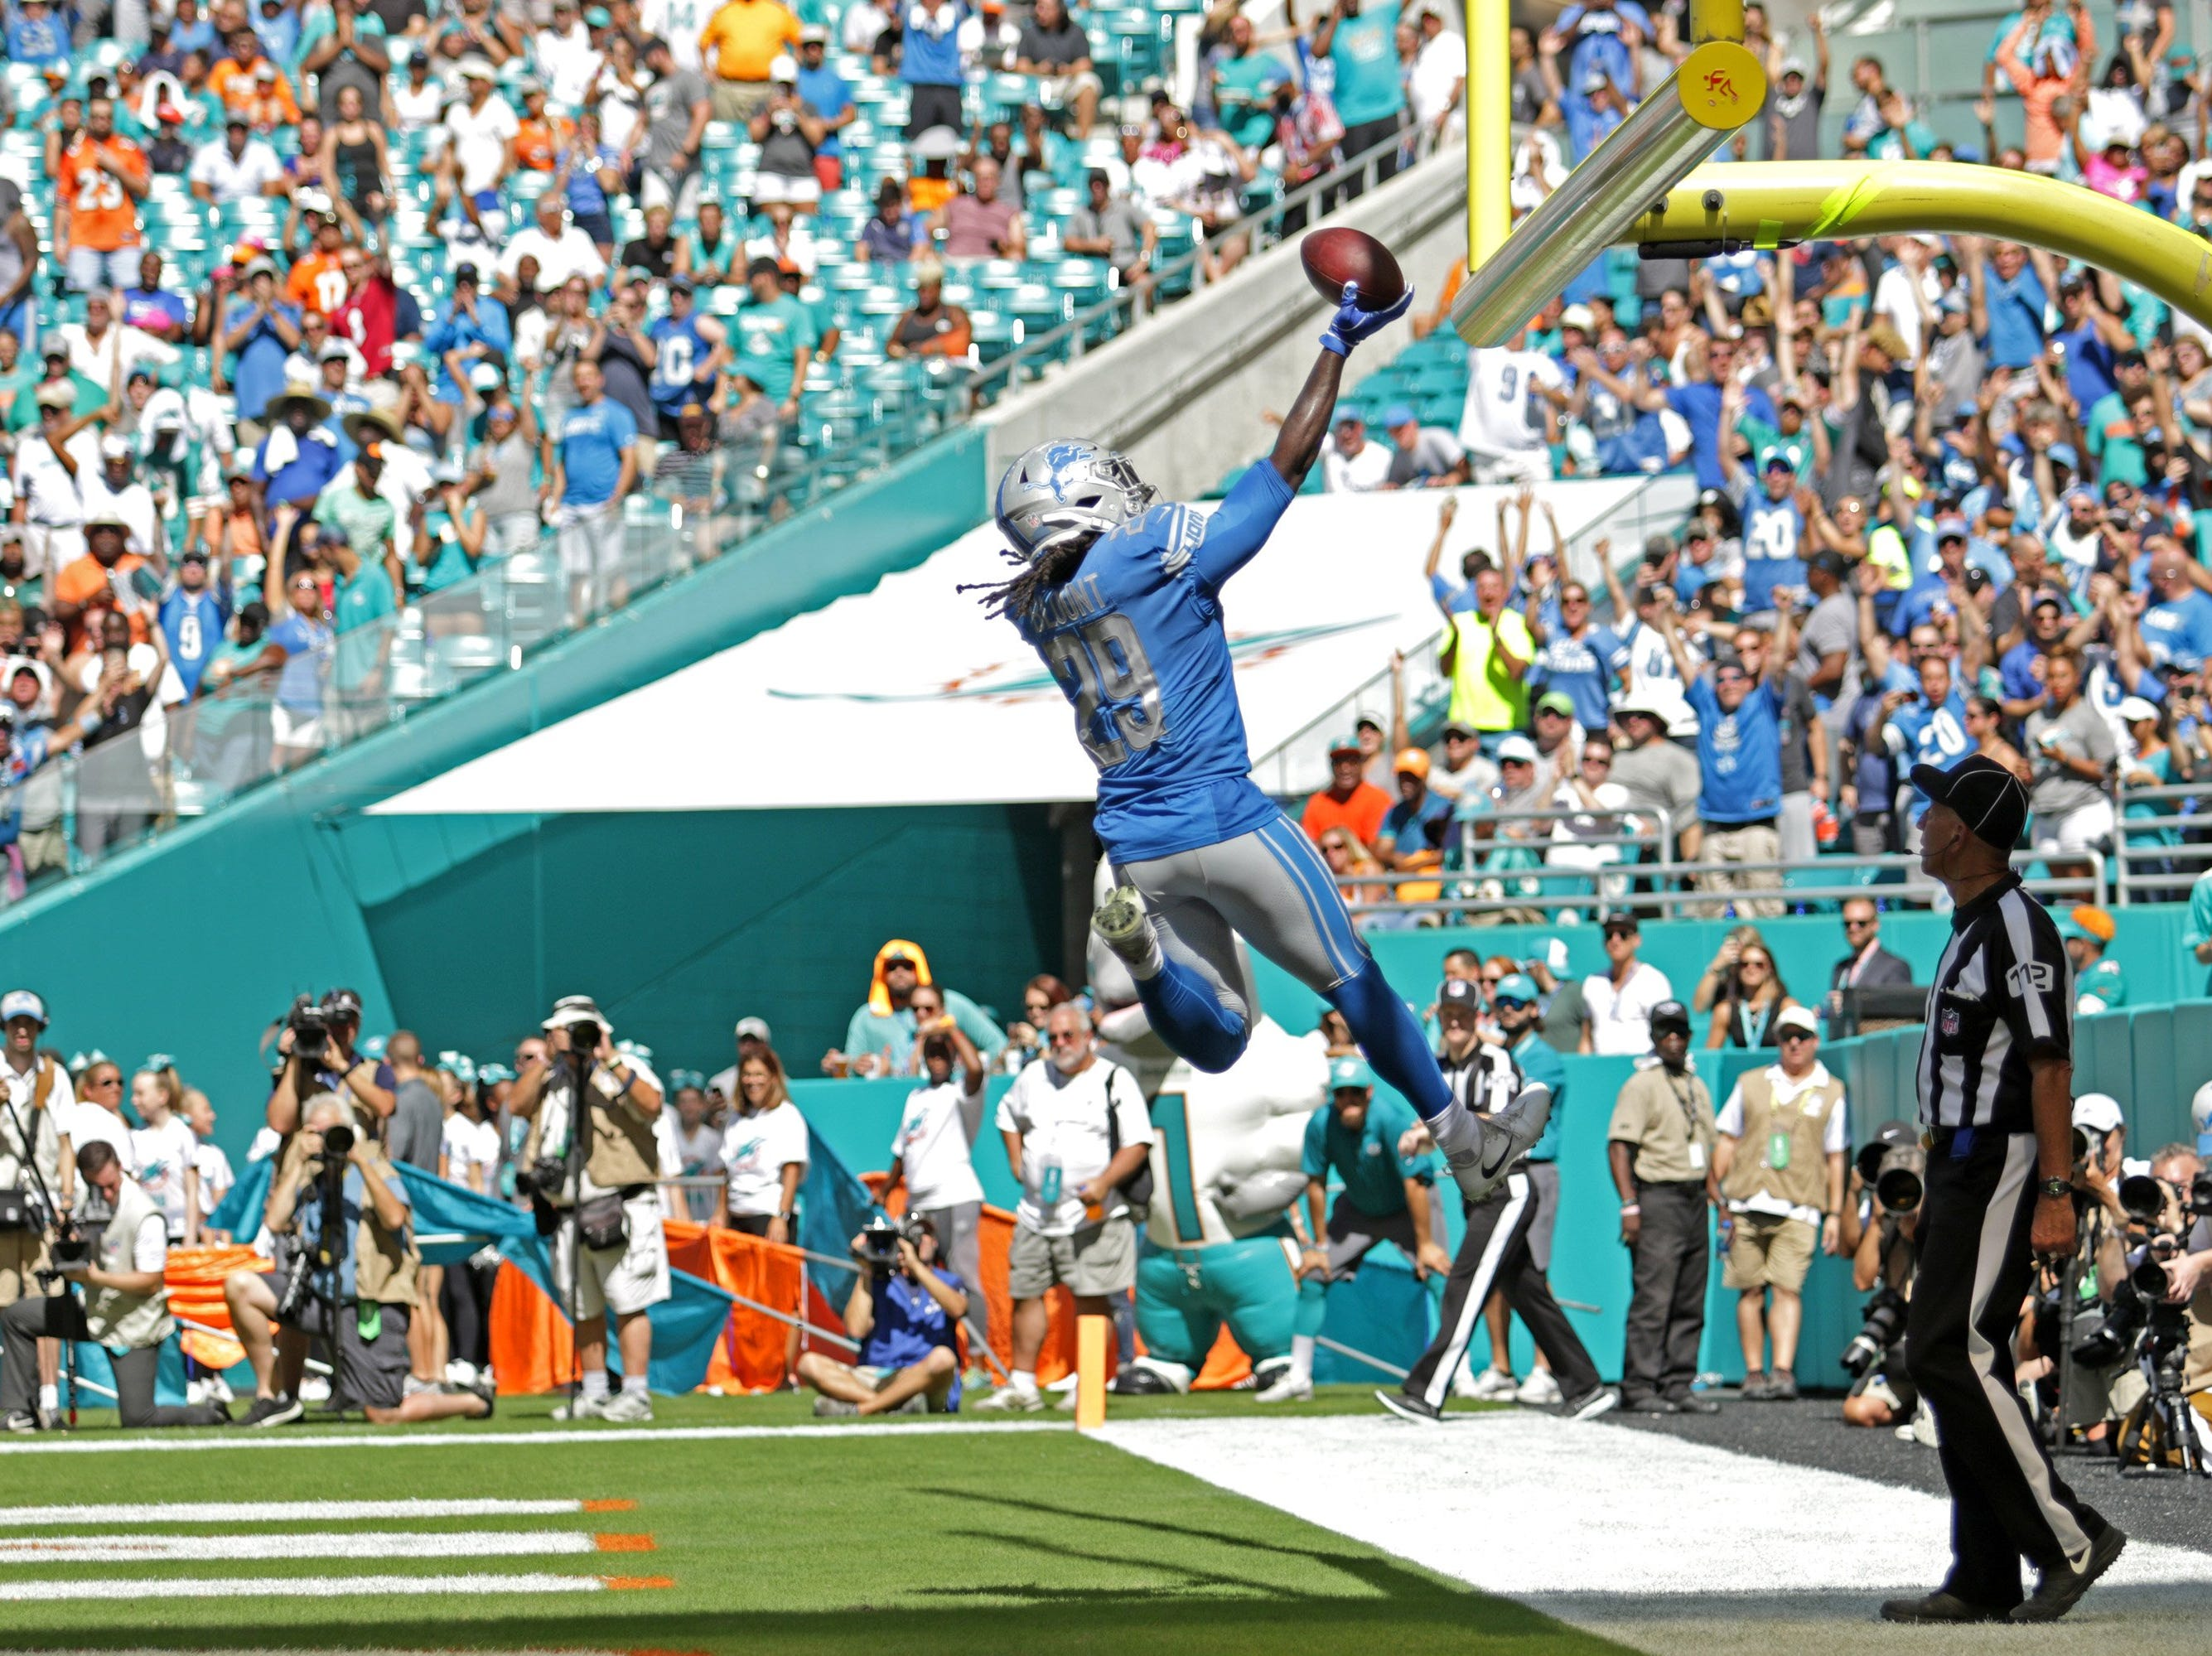 Lions running back LeGarrette Blount celebrates a touchdown in the second quarter of the Lions' 32-21 win on Sunday, Oct. 21, 2018, in Miami Gardens, Fla.